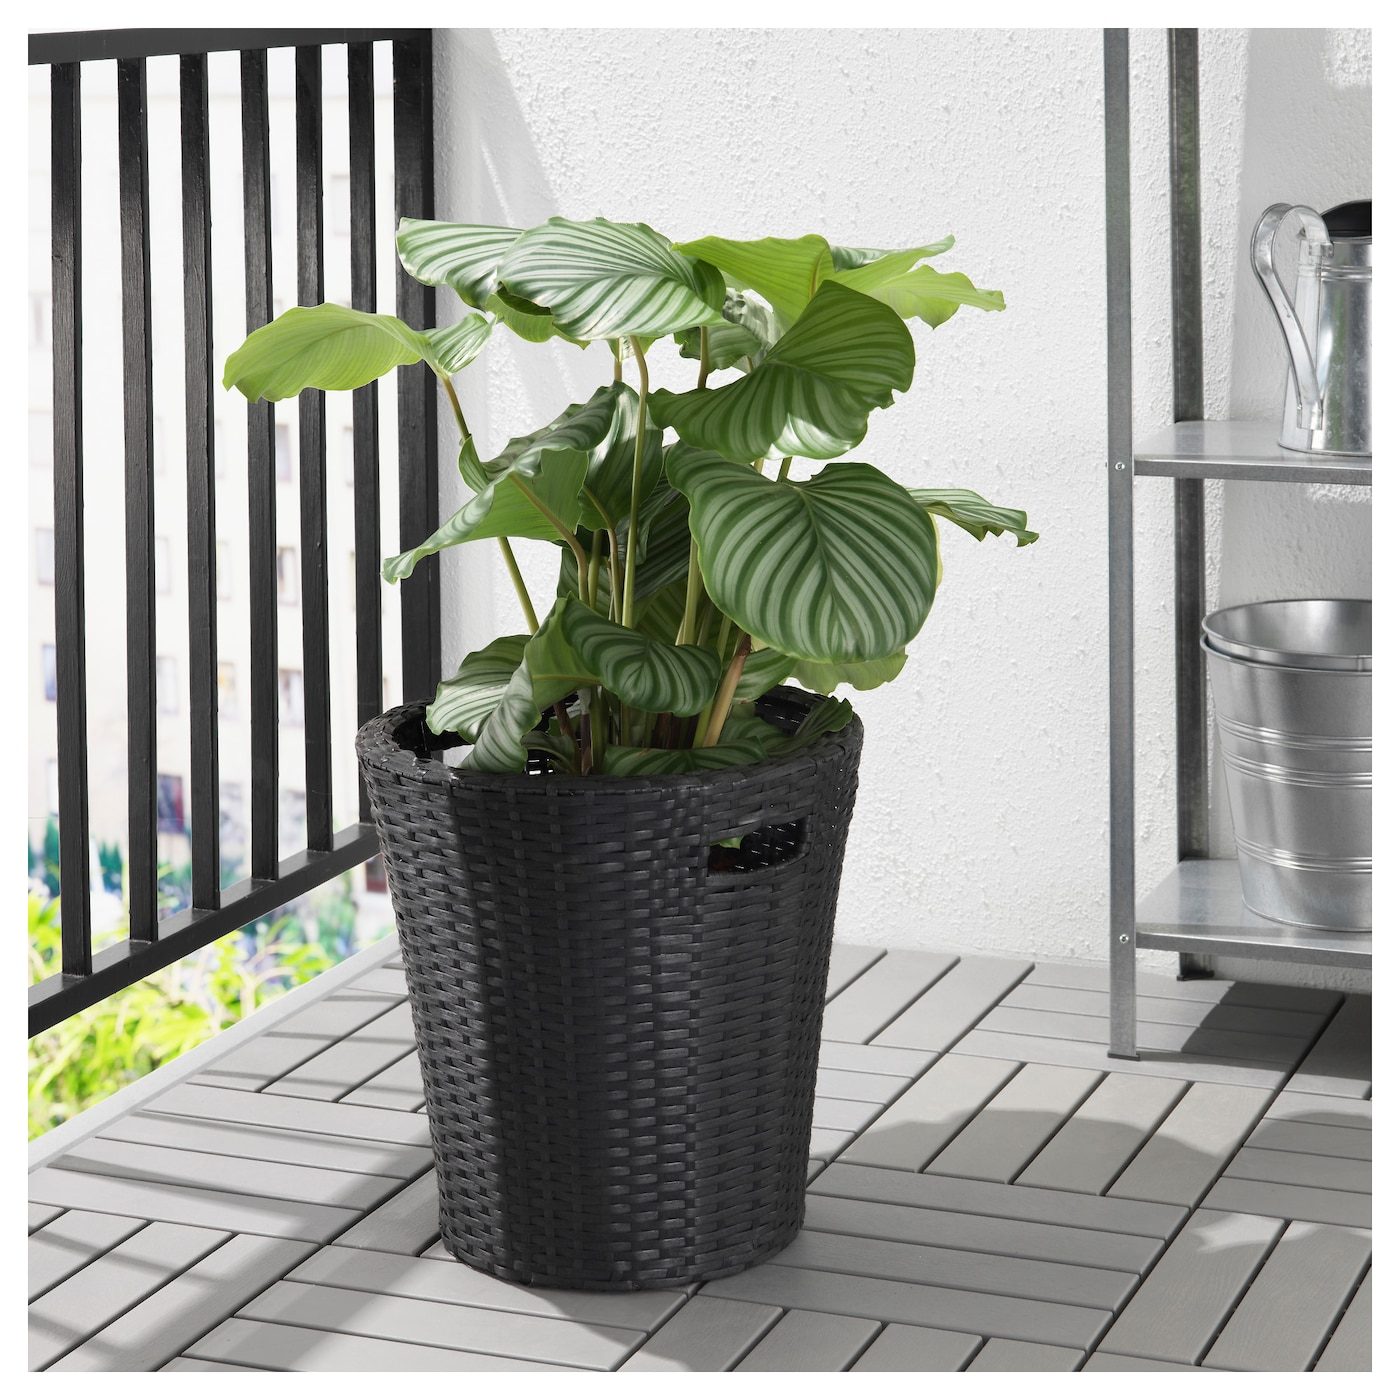 kokbanan cache pot int rieur ext rieur noir 32 cm ikea. Black Bedroom Furniture Sets. Home Design Ideas